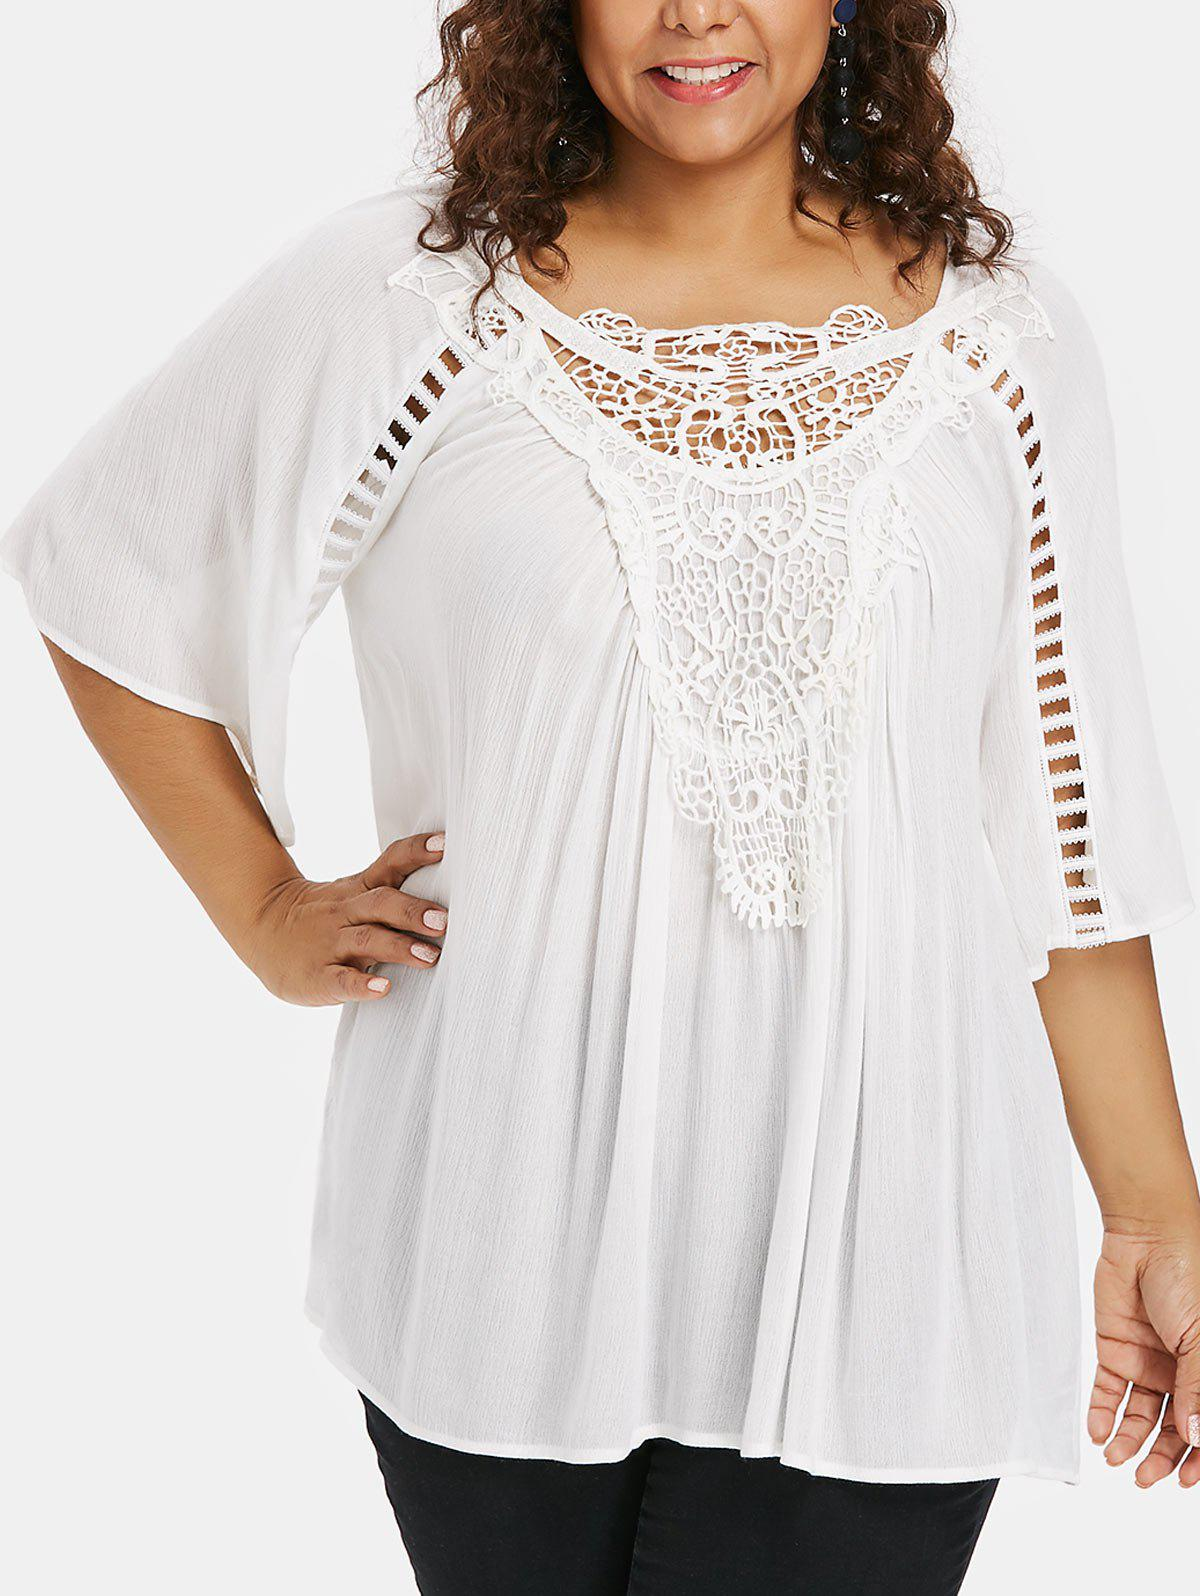 8ba25de3 28% OFF] Plus Size Applique Lace Flowy Blouse | Rosegal